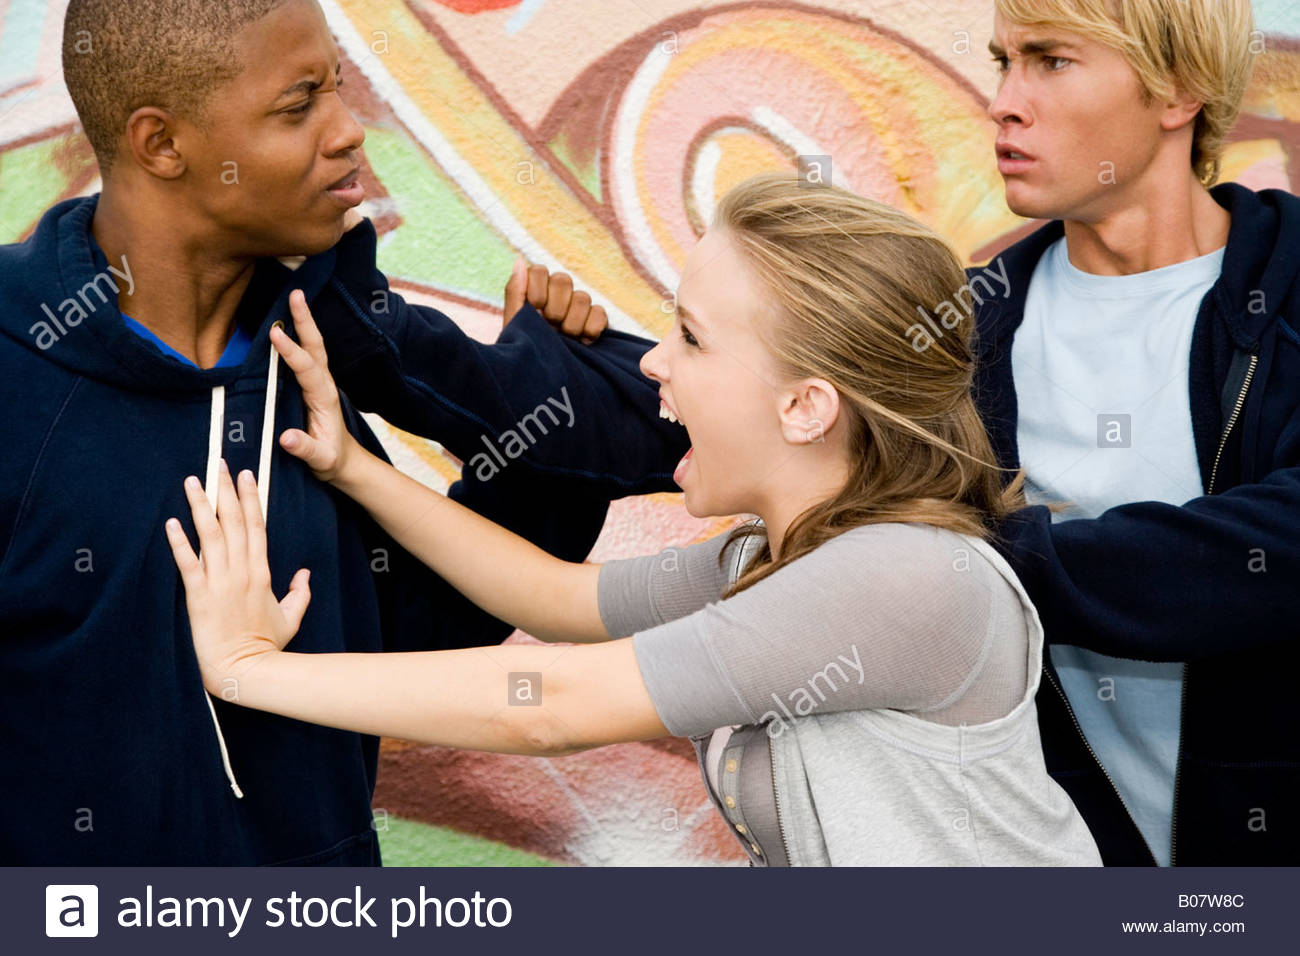 Two men fighting over a girl in front of a graffiti covered wall Stock Photo